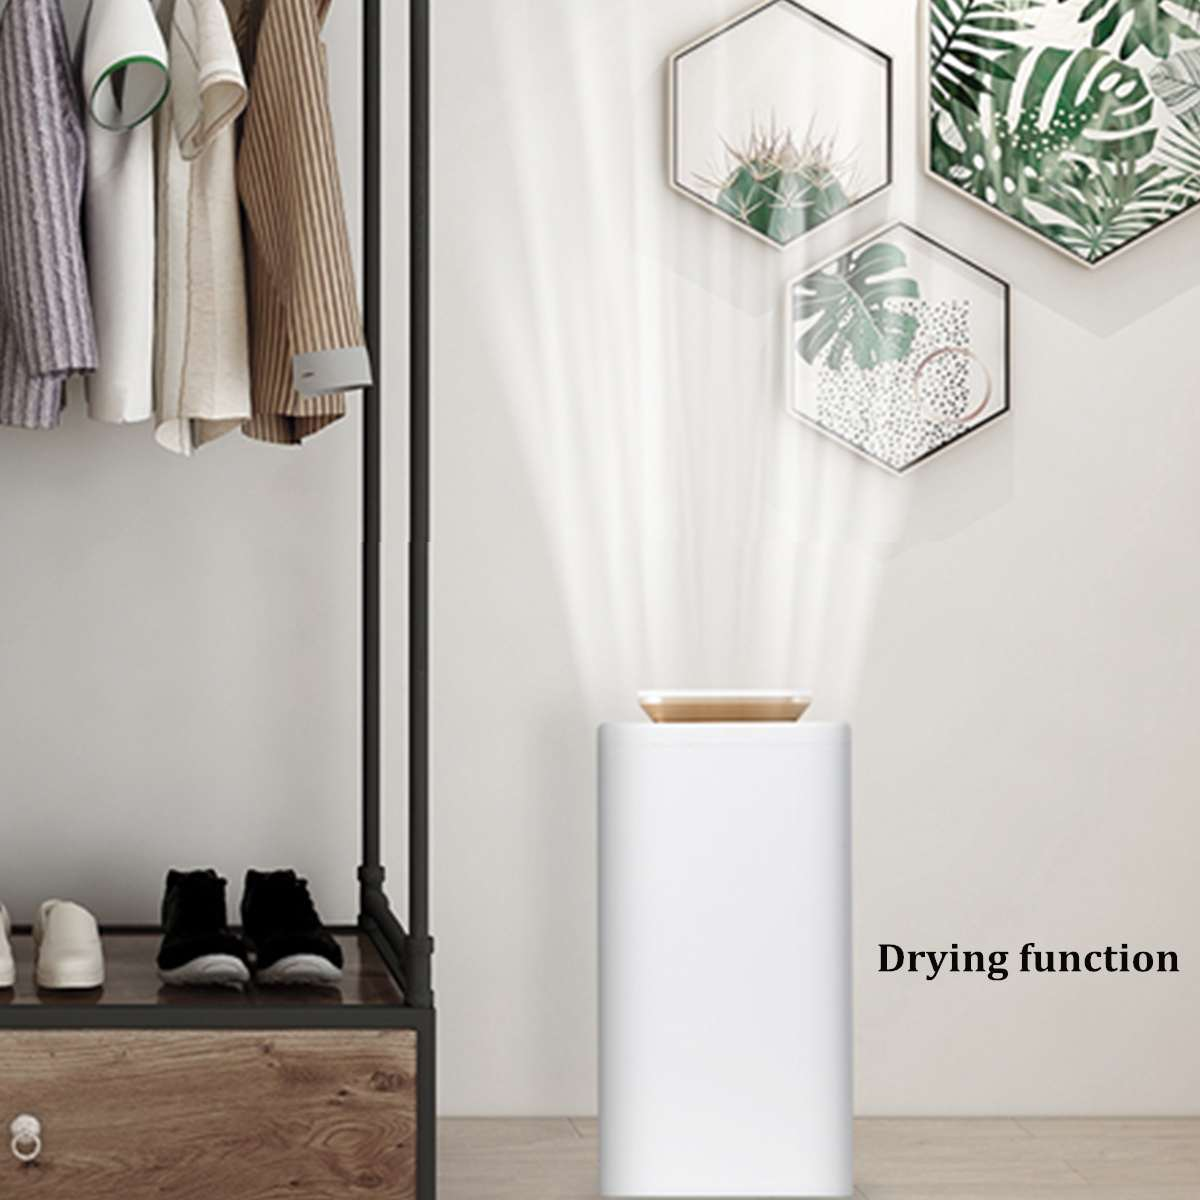 2.7L Household Smart Electric Air Dehumidifier Air Purifier Bedroom Basement Moisture Absorber Air Dryer with LED Display 220V